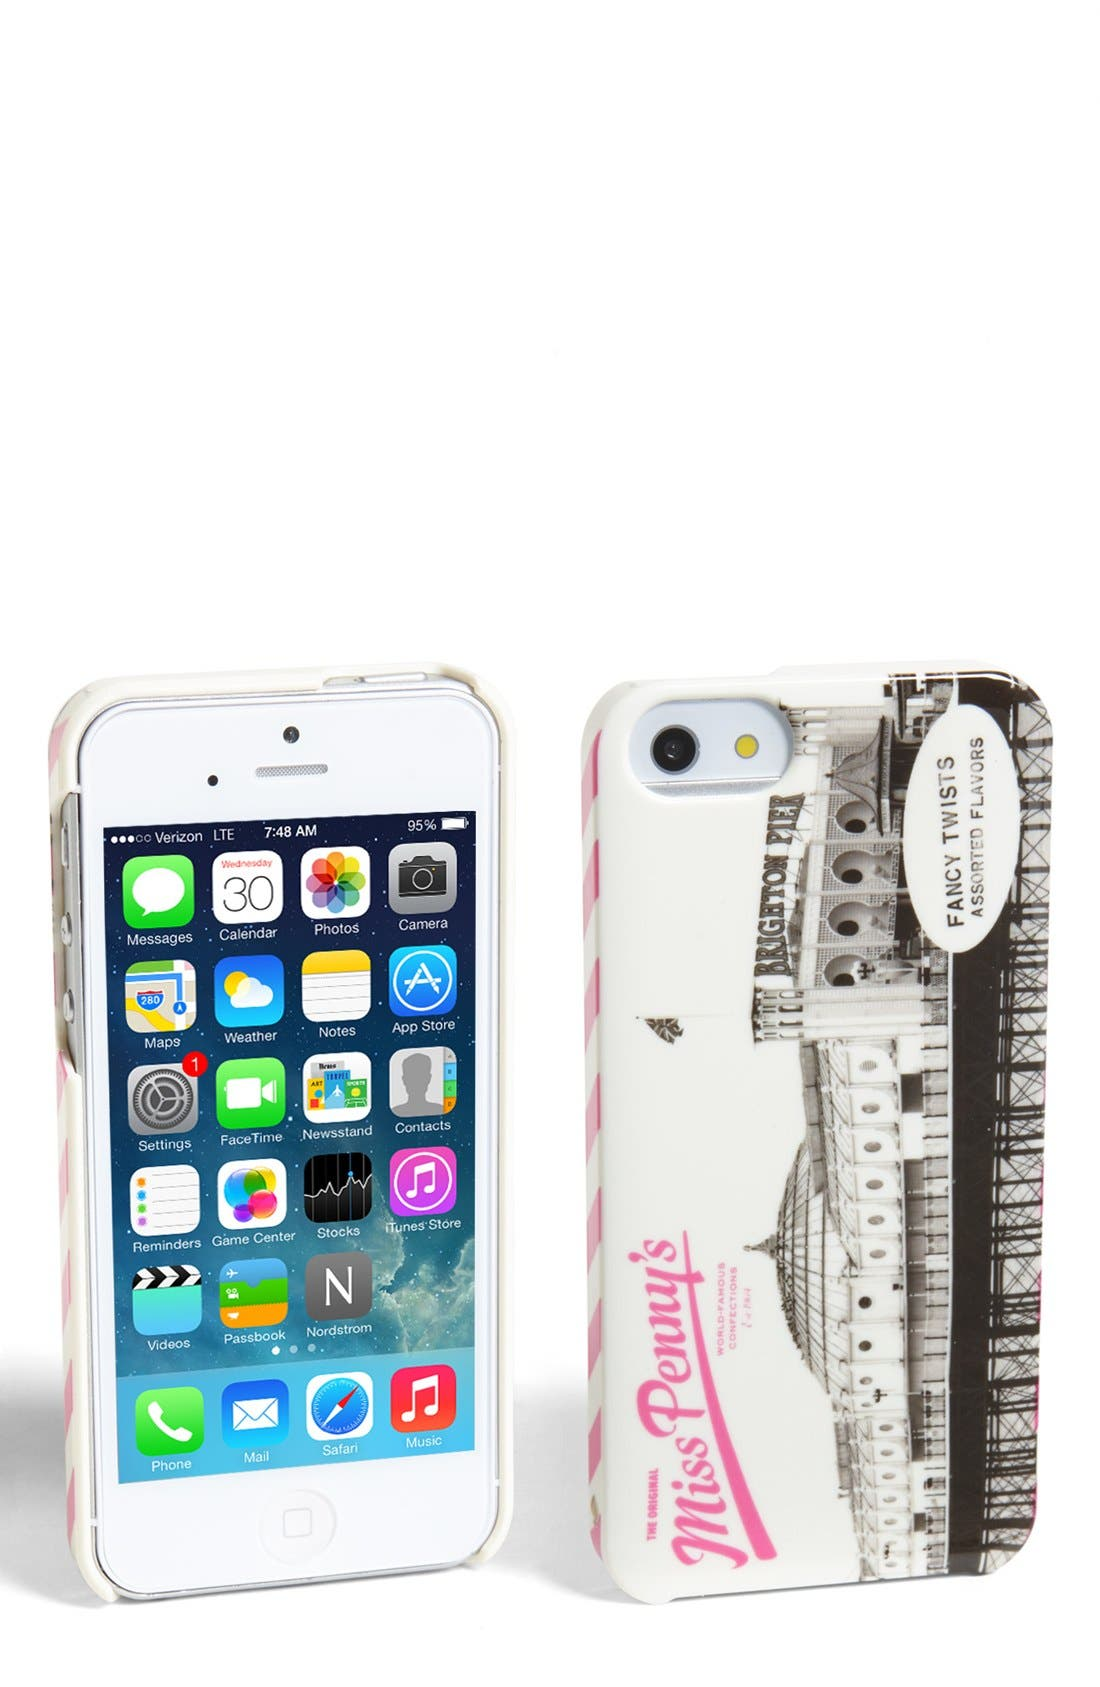 Main Image - kate spade new york 'miss penny's' iPhone 5 & 5s case